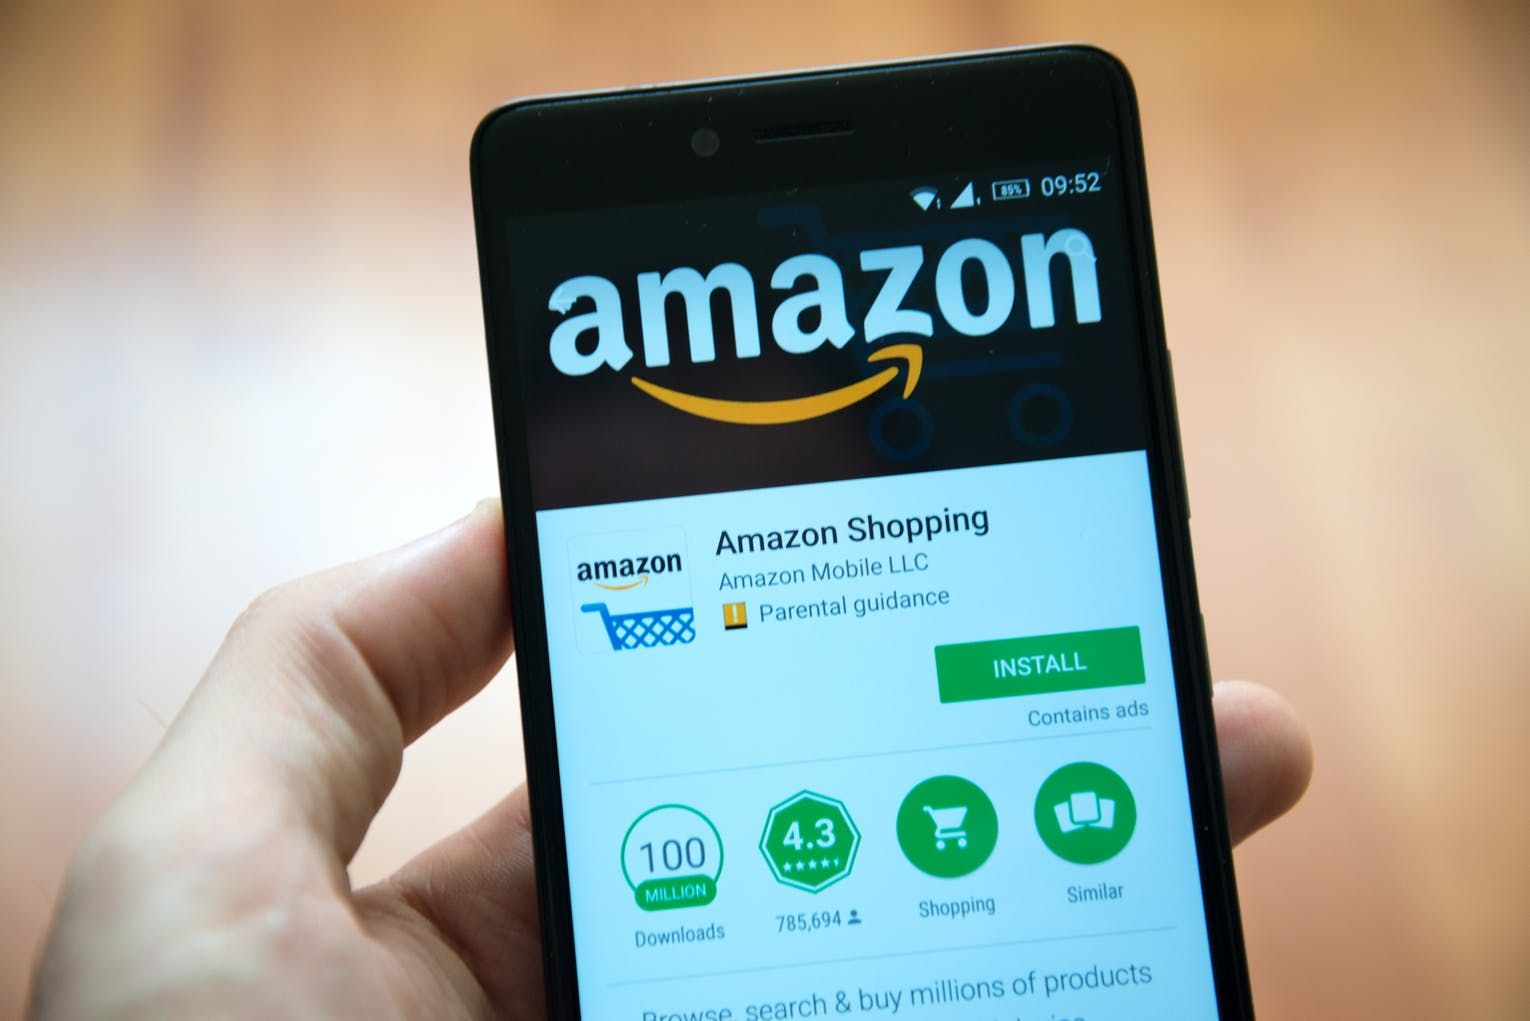 How to Nab a 10 Amazon Coupon for Free This Month